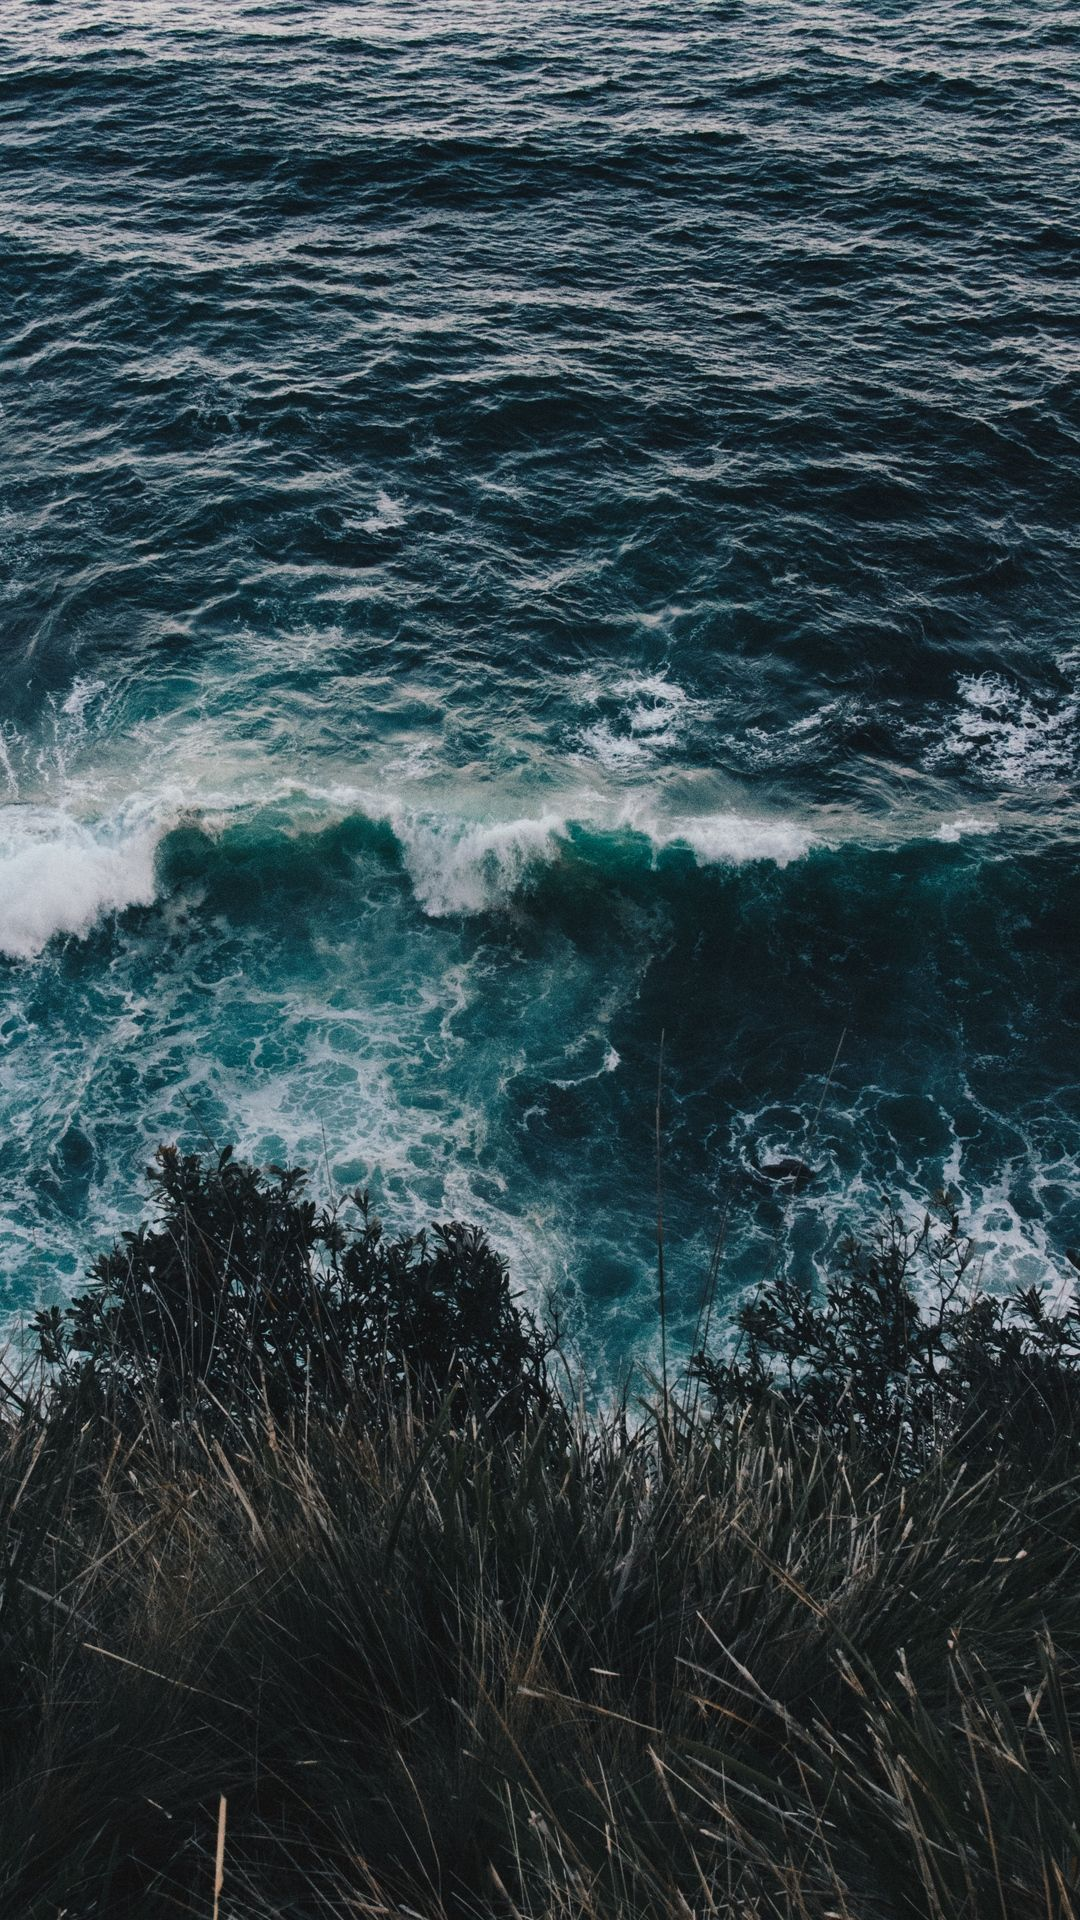 Wallpaper For Iphone Sea Wave Hd